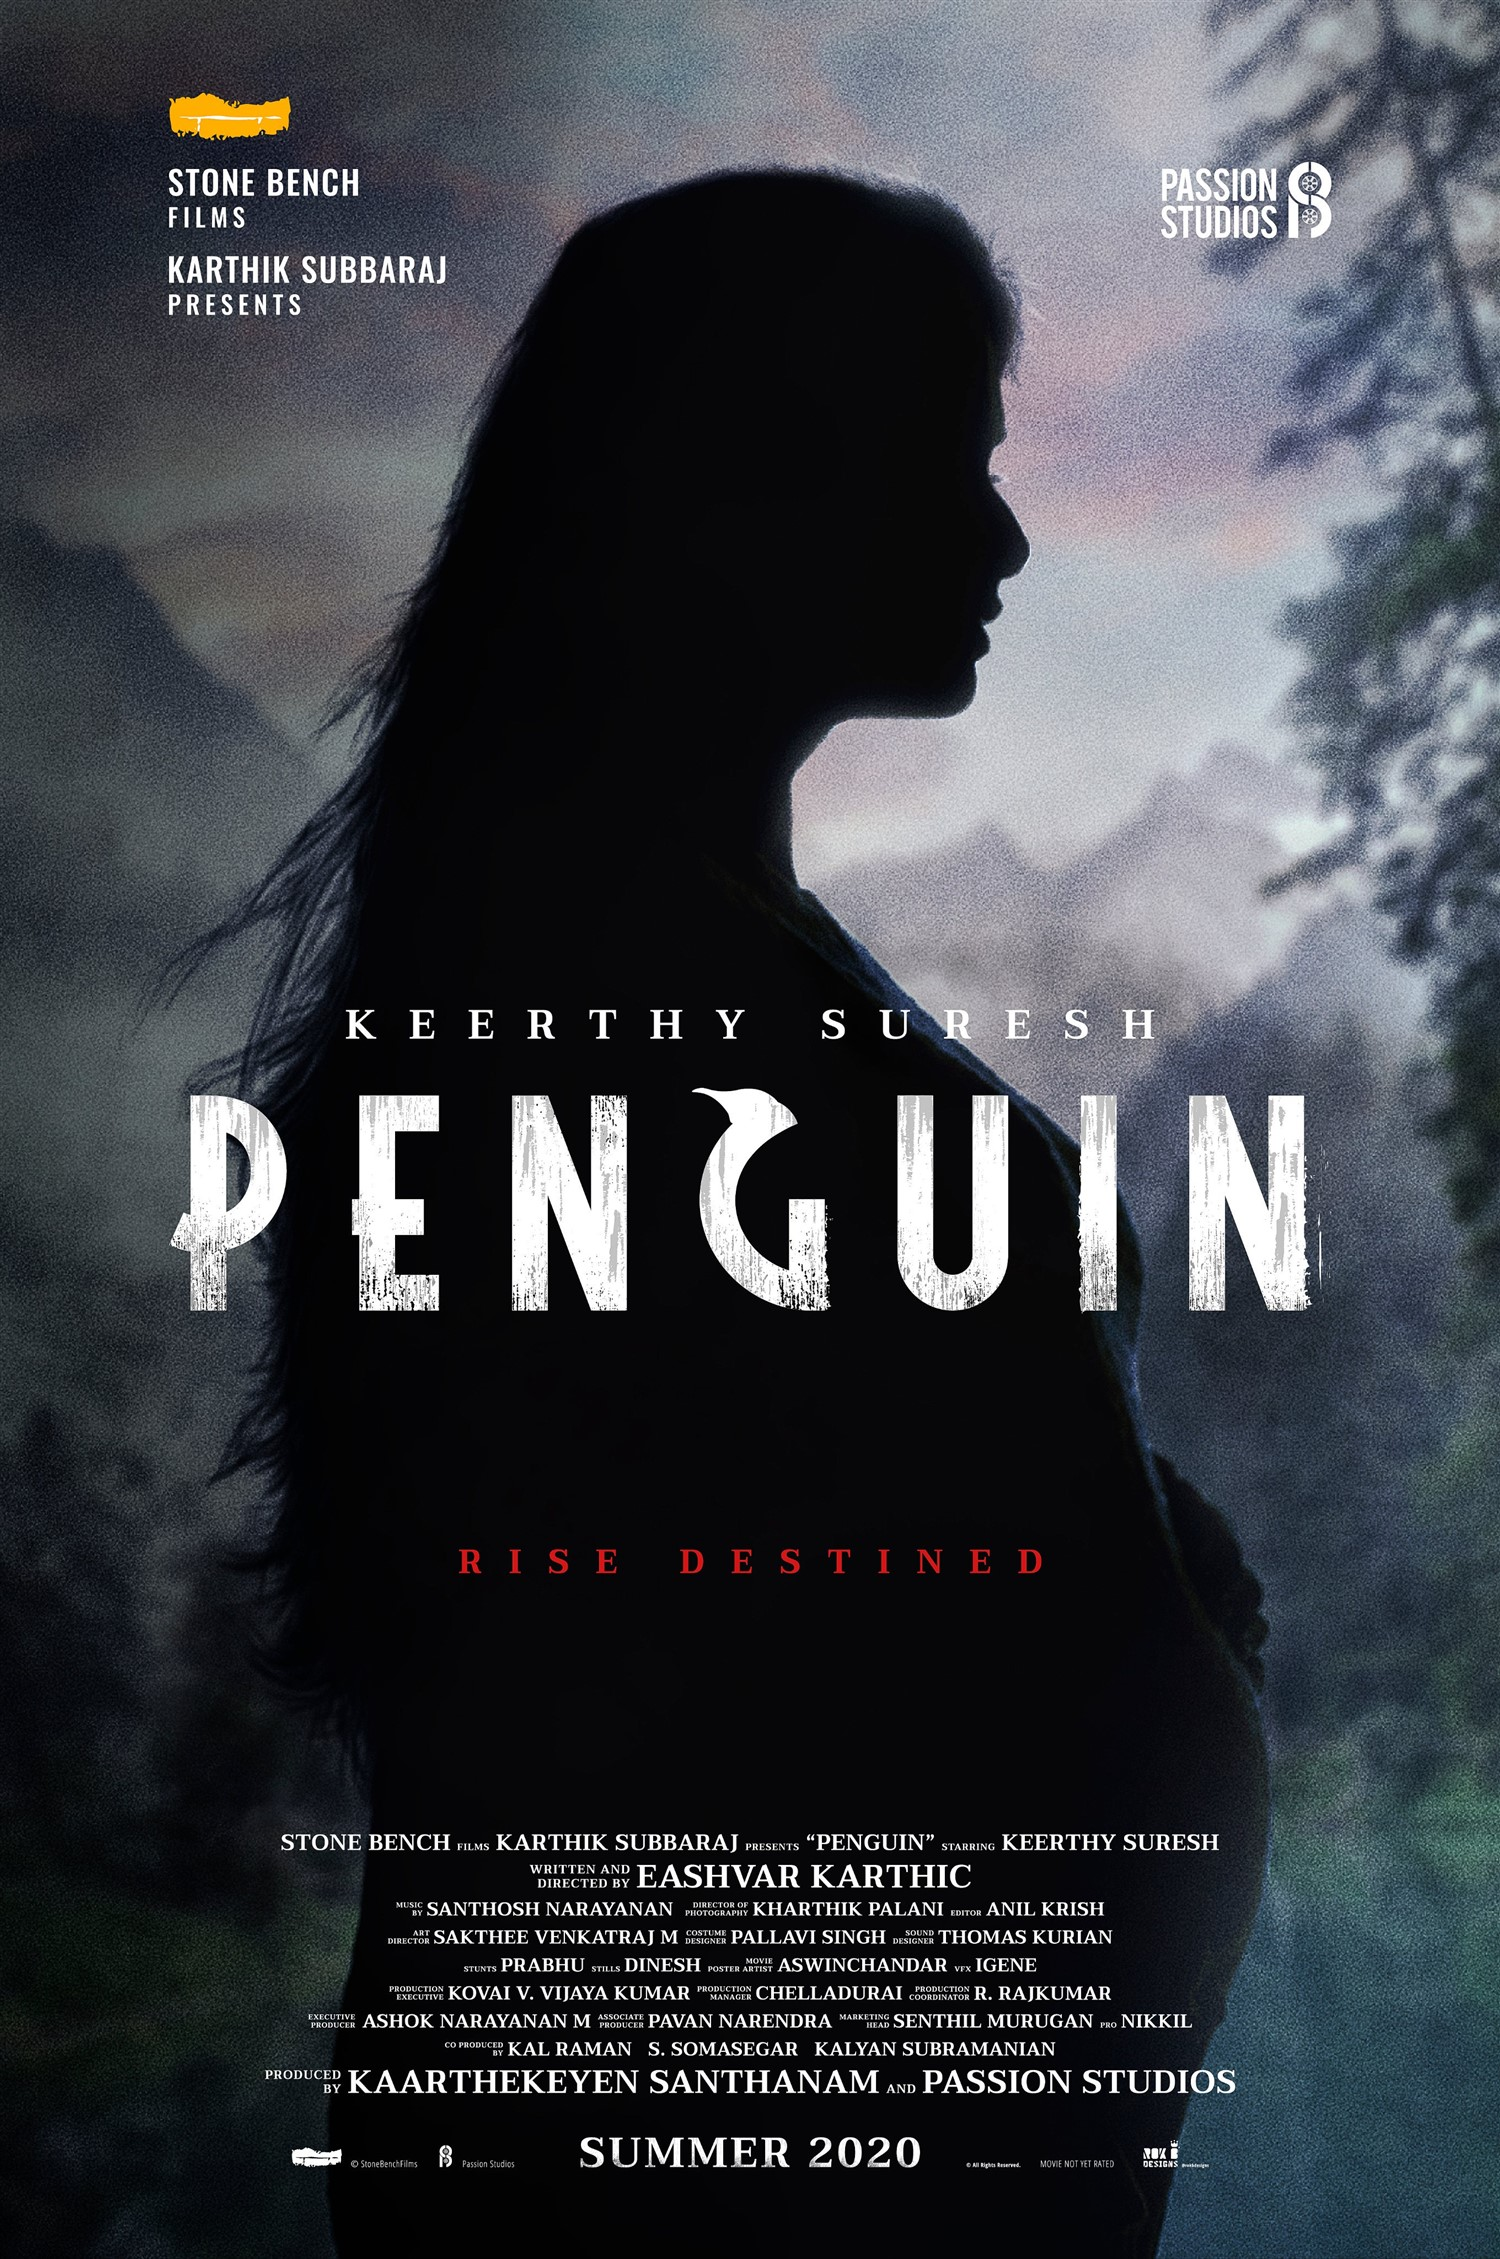 Actress Keerthi Suresh Penguin Movie Title Look Poster HD